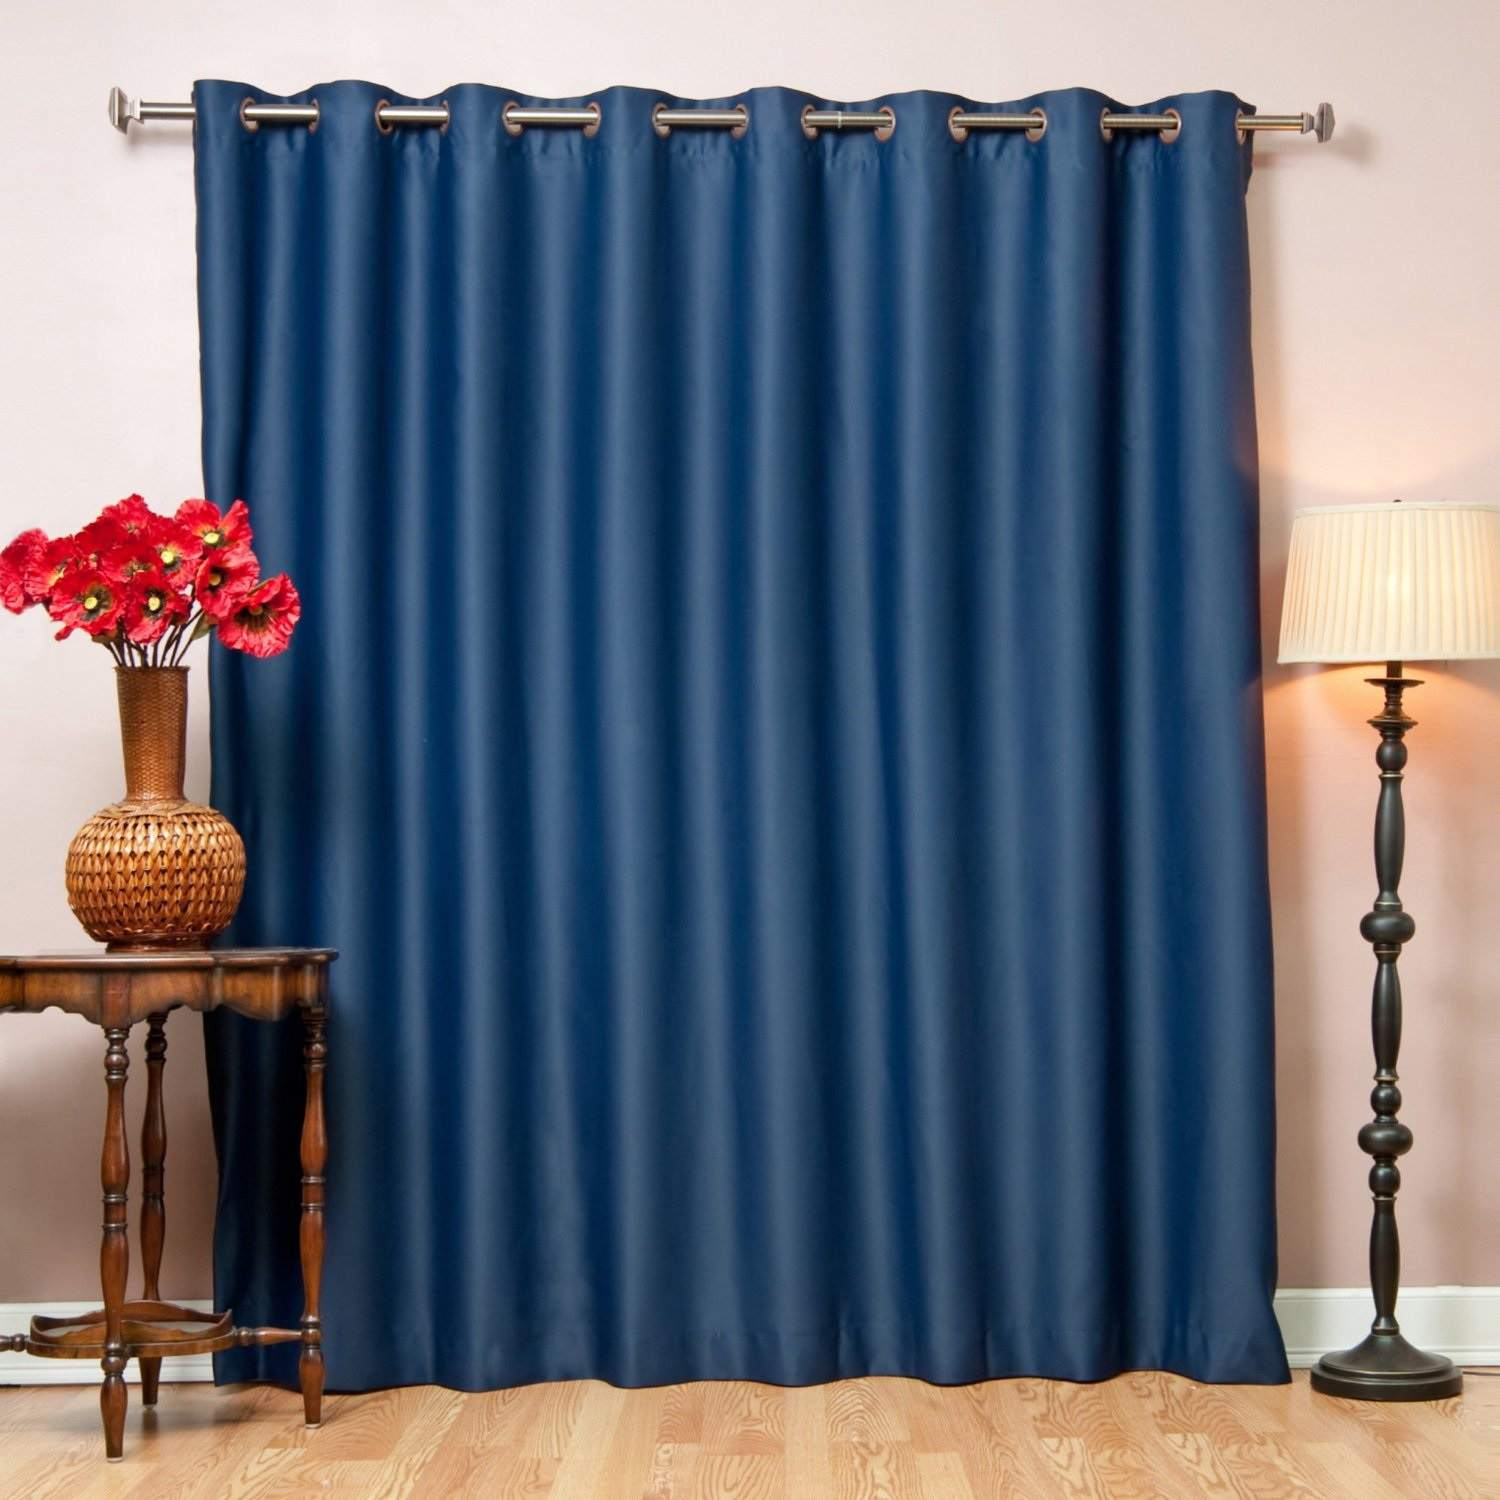 wood at pin drape monterey louver blinds a available shutters budget are drapes composite